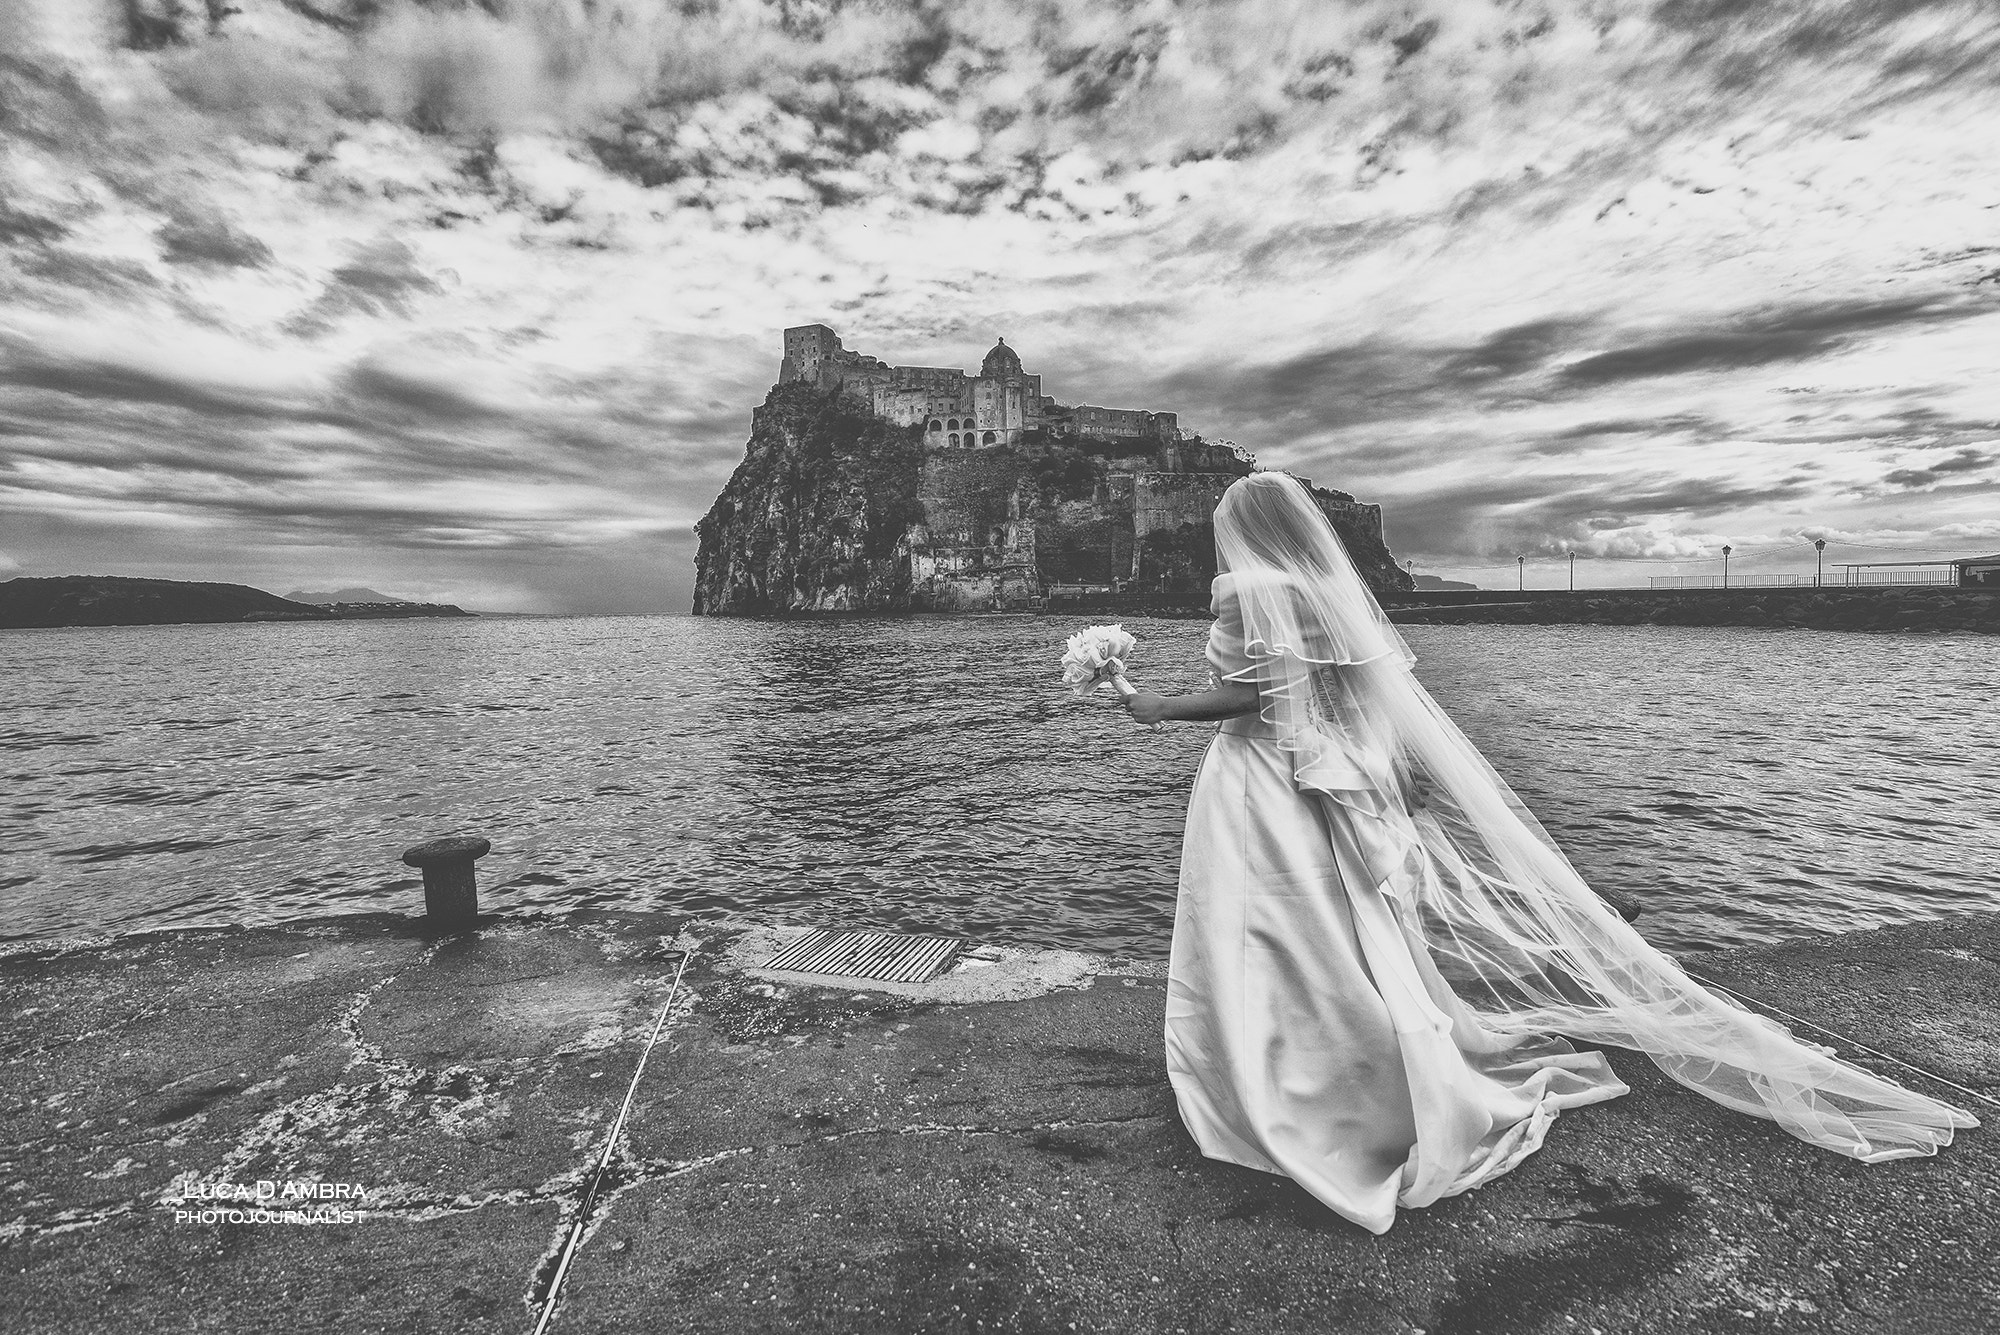 Photograph Ischia Wedding by Luca D'ambra on 500px